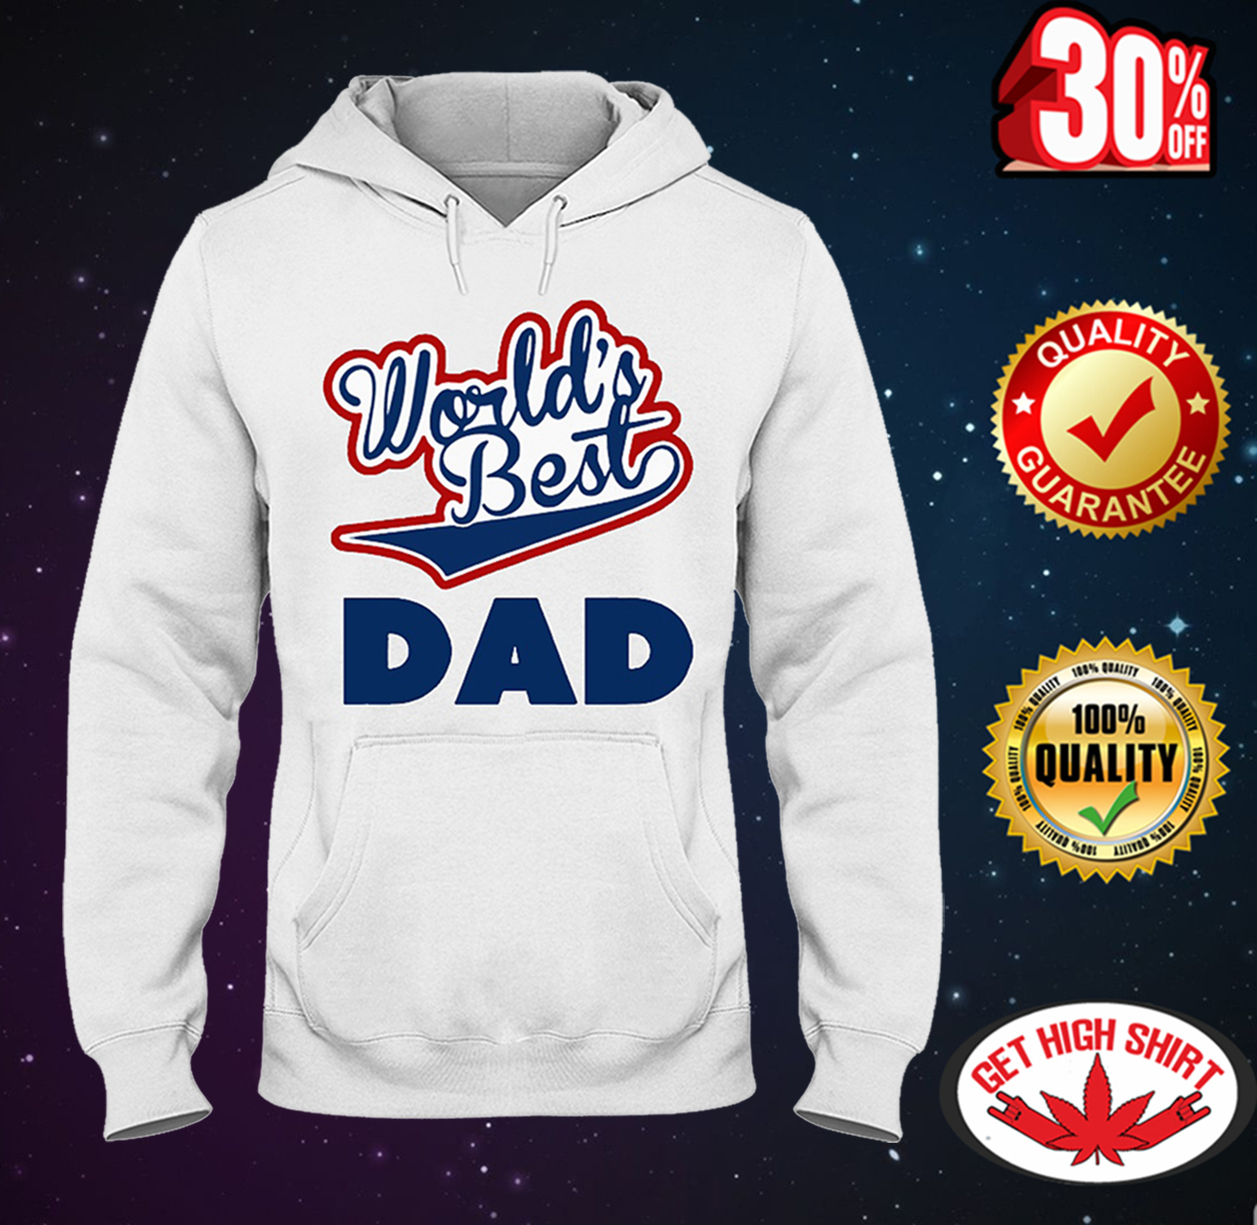 World's best dad hooded sweatshirt